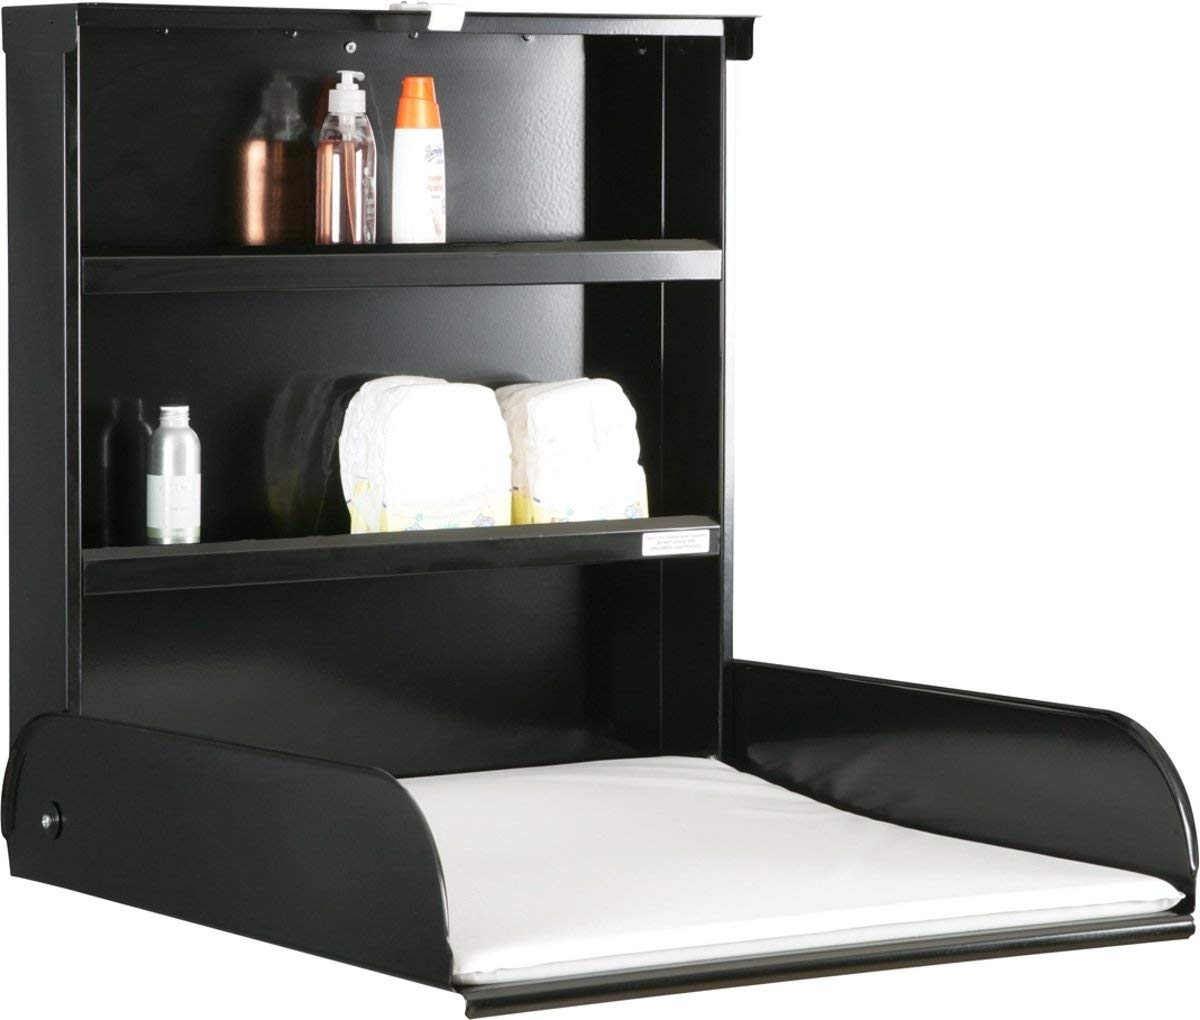 Changing table wall Fifi black Bybo design byBo design Open Dimensions: H 72.5x L 26.5x D 75Cm. Closed Size: L 76.5x 26.5cm. Finish: Painted Black. 1